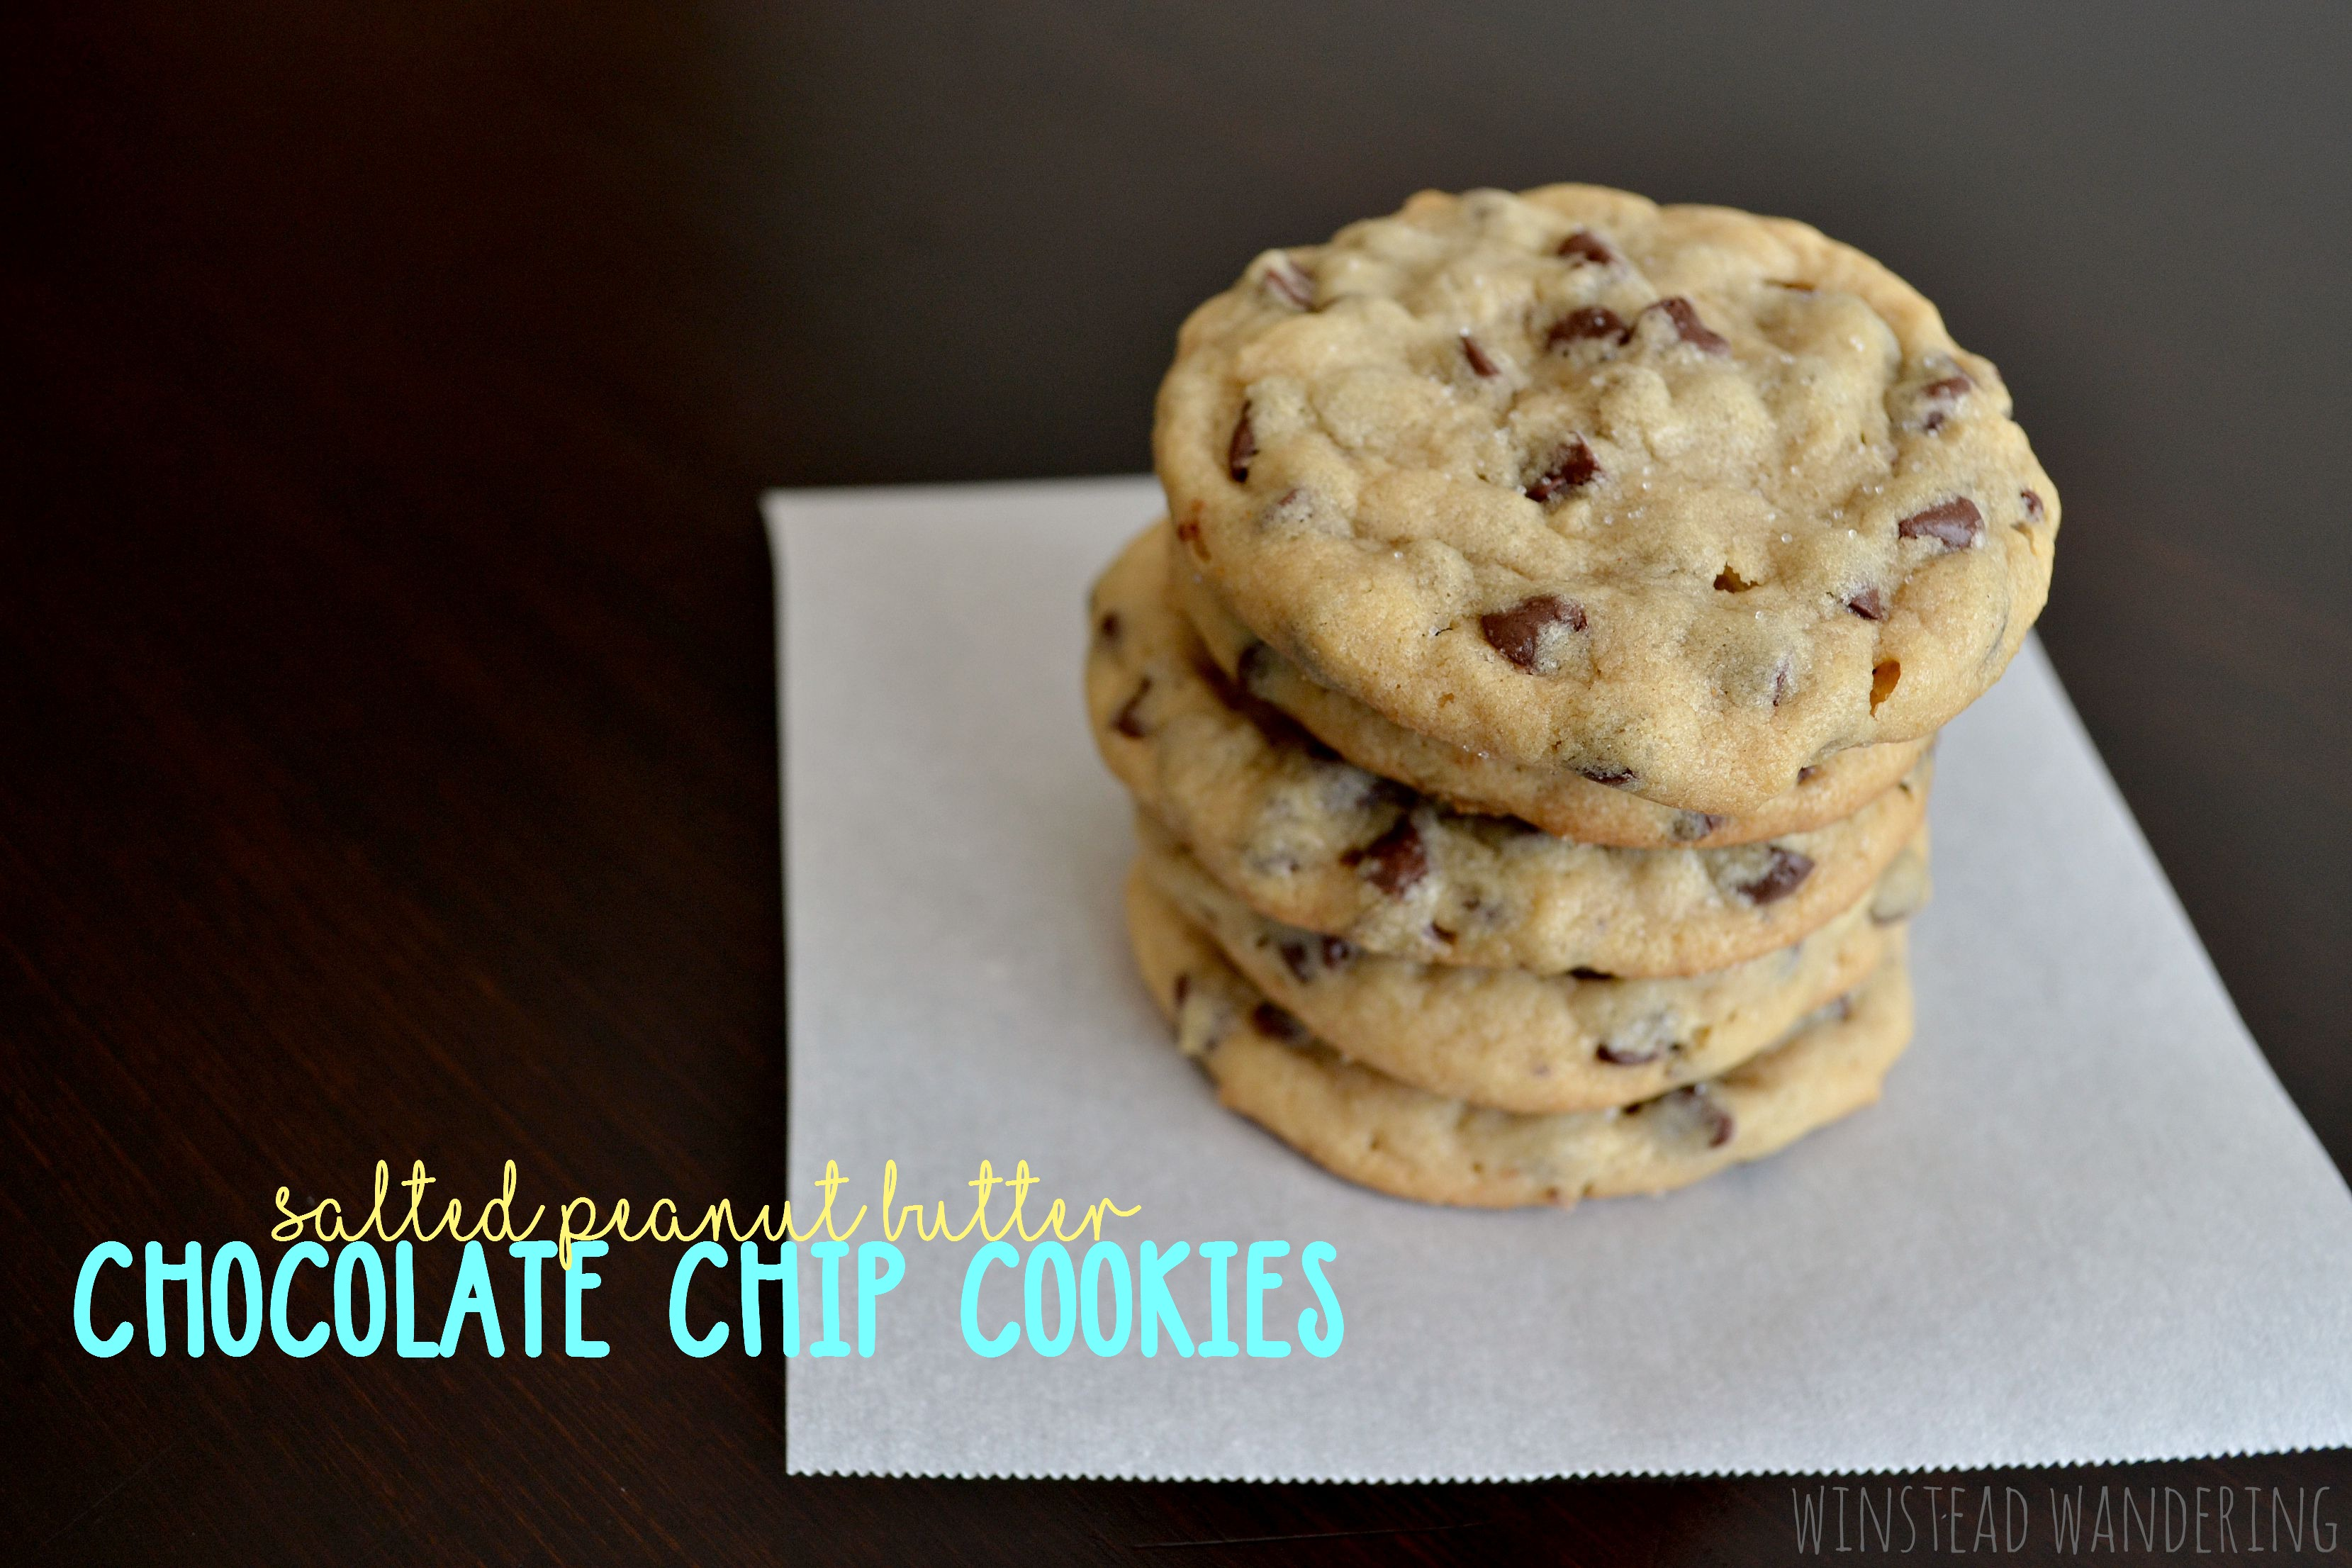 Salted peanut butter chocolate chip cookies are swirled with creamy PB and stuffed with plenty of mini chocolate chips. Like regular cookies, but way better